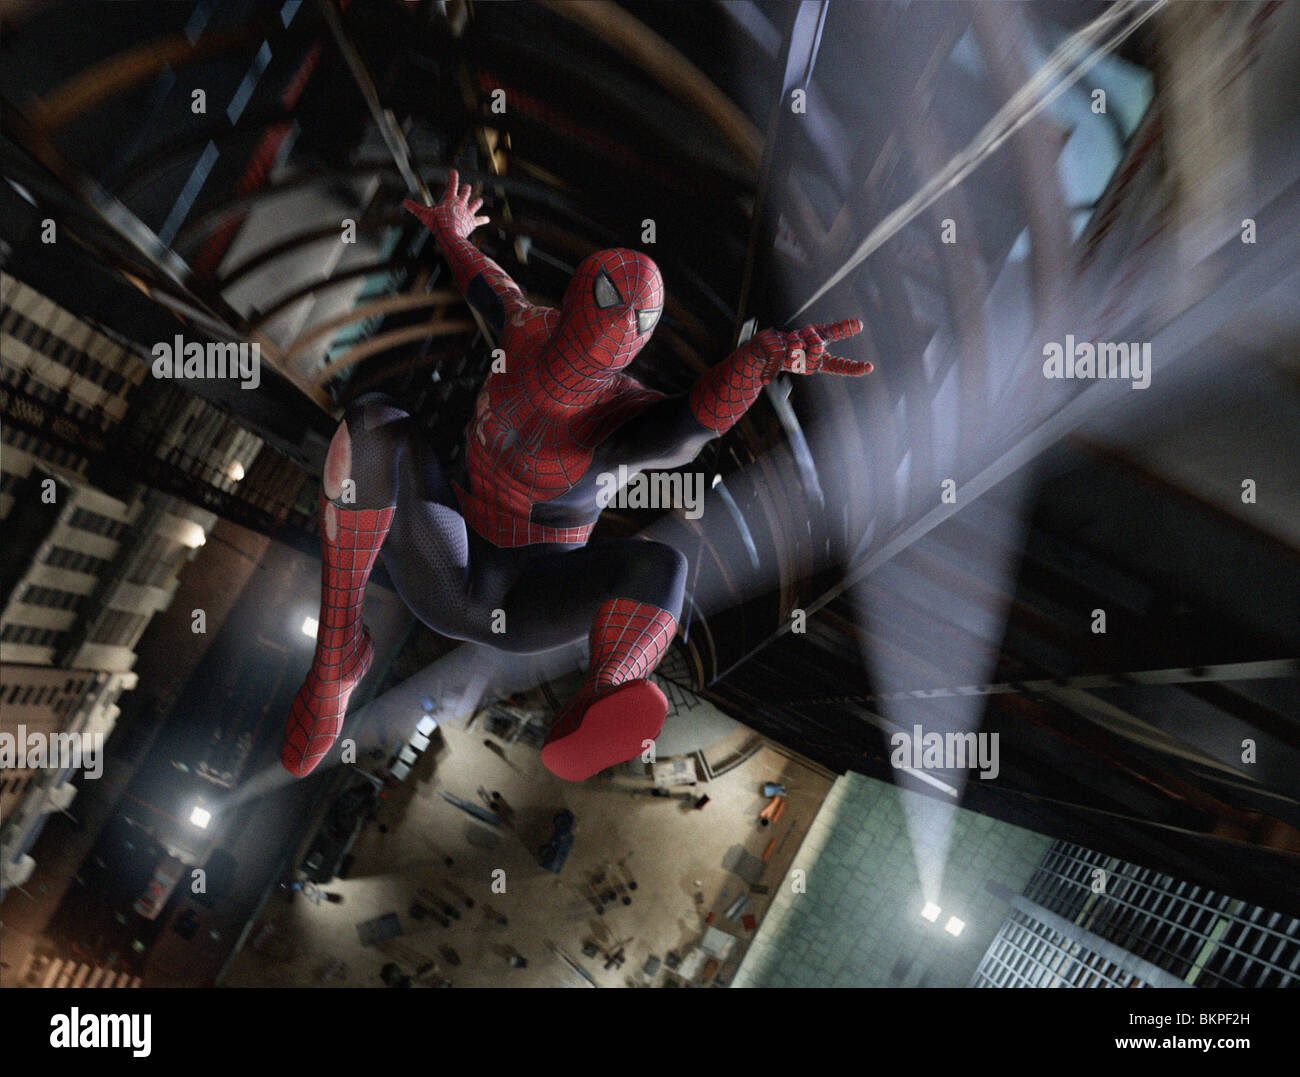 FANTASY, HERO, ACTION FIGURE, CITY SCAPE, NIGHT, BLOOD, SUIT, CGI, COMPUTER GRAPHIC, SPECIAL EFFECTS - Stock Image